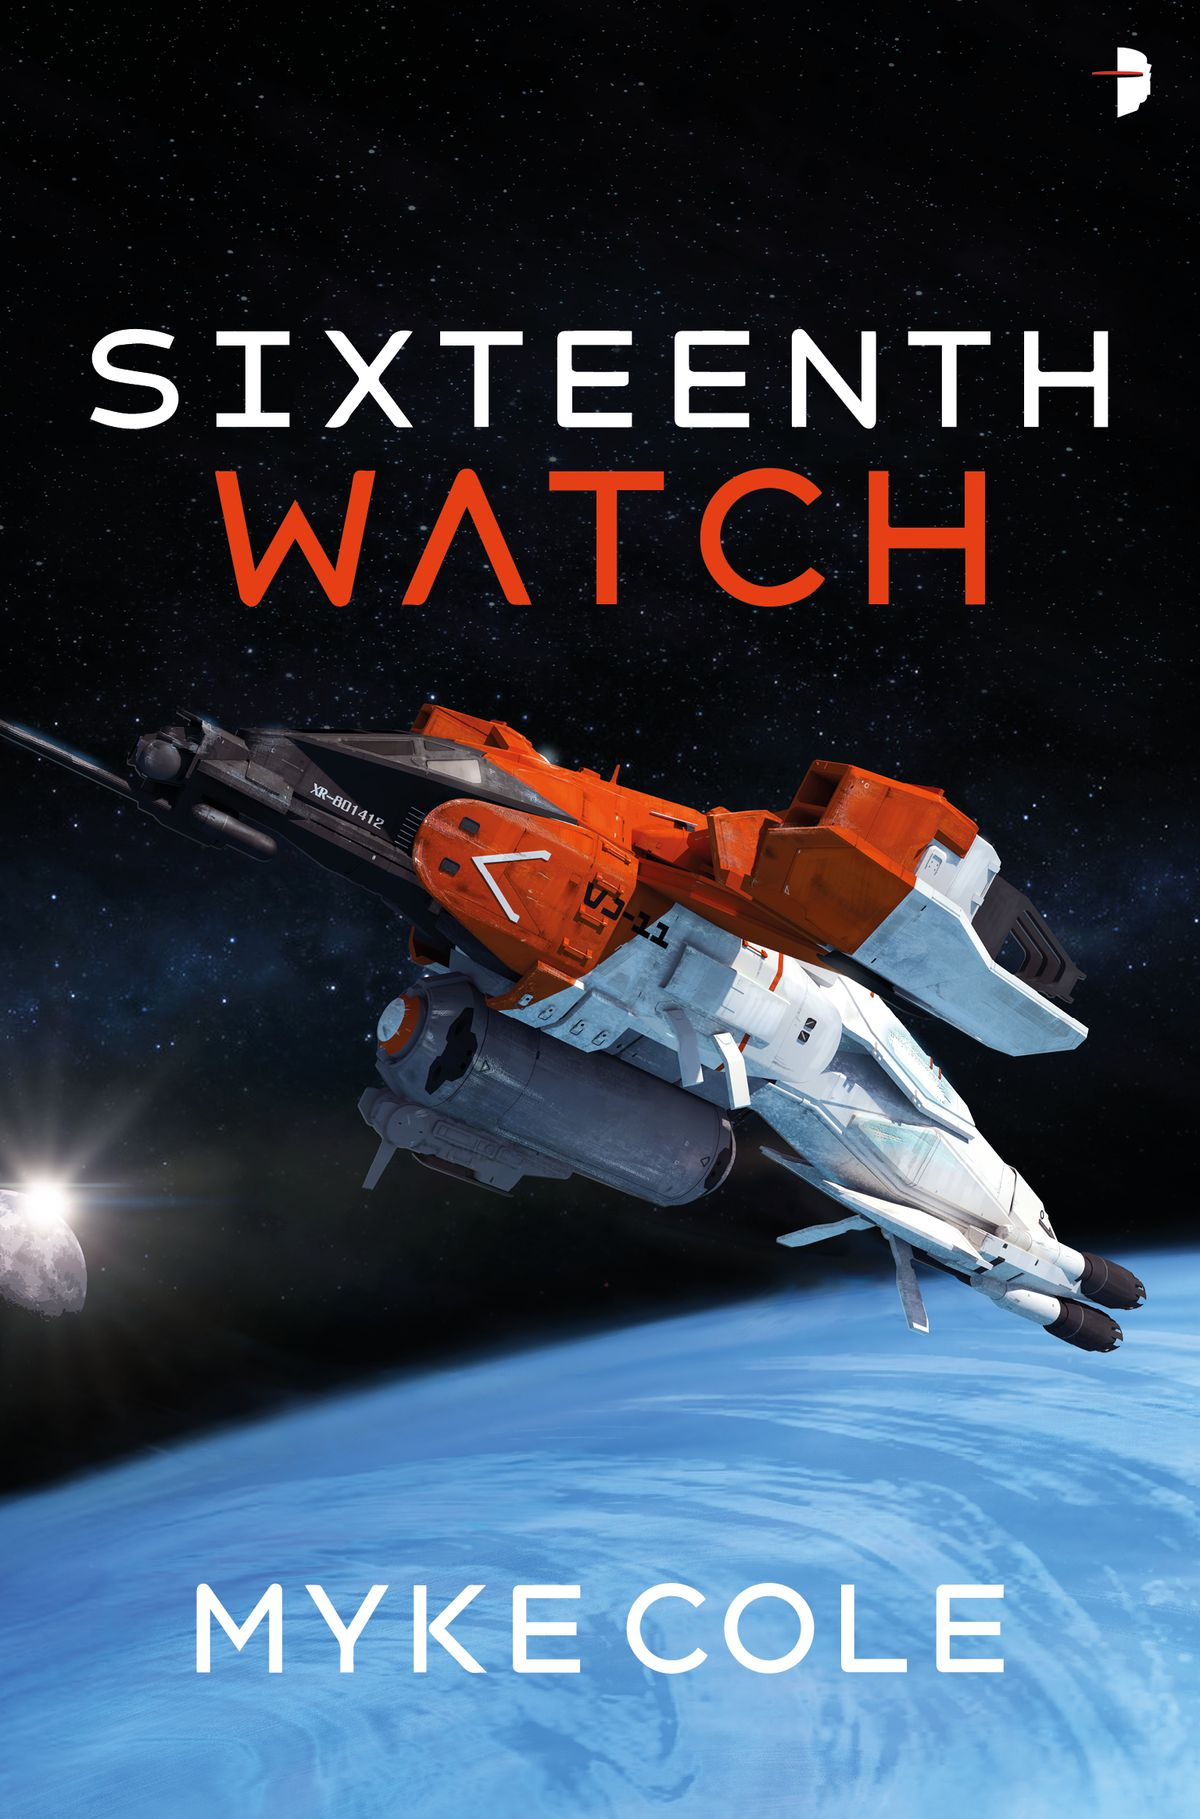 a spaceship dives in sixteen watch